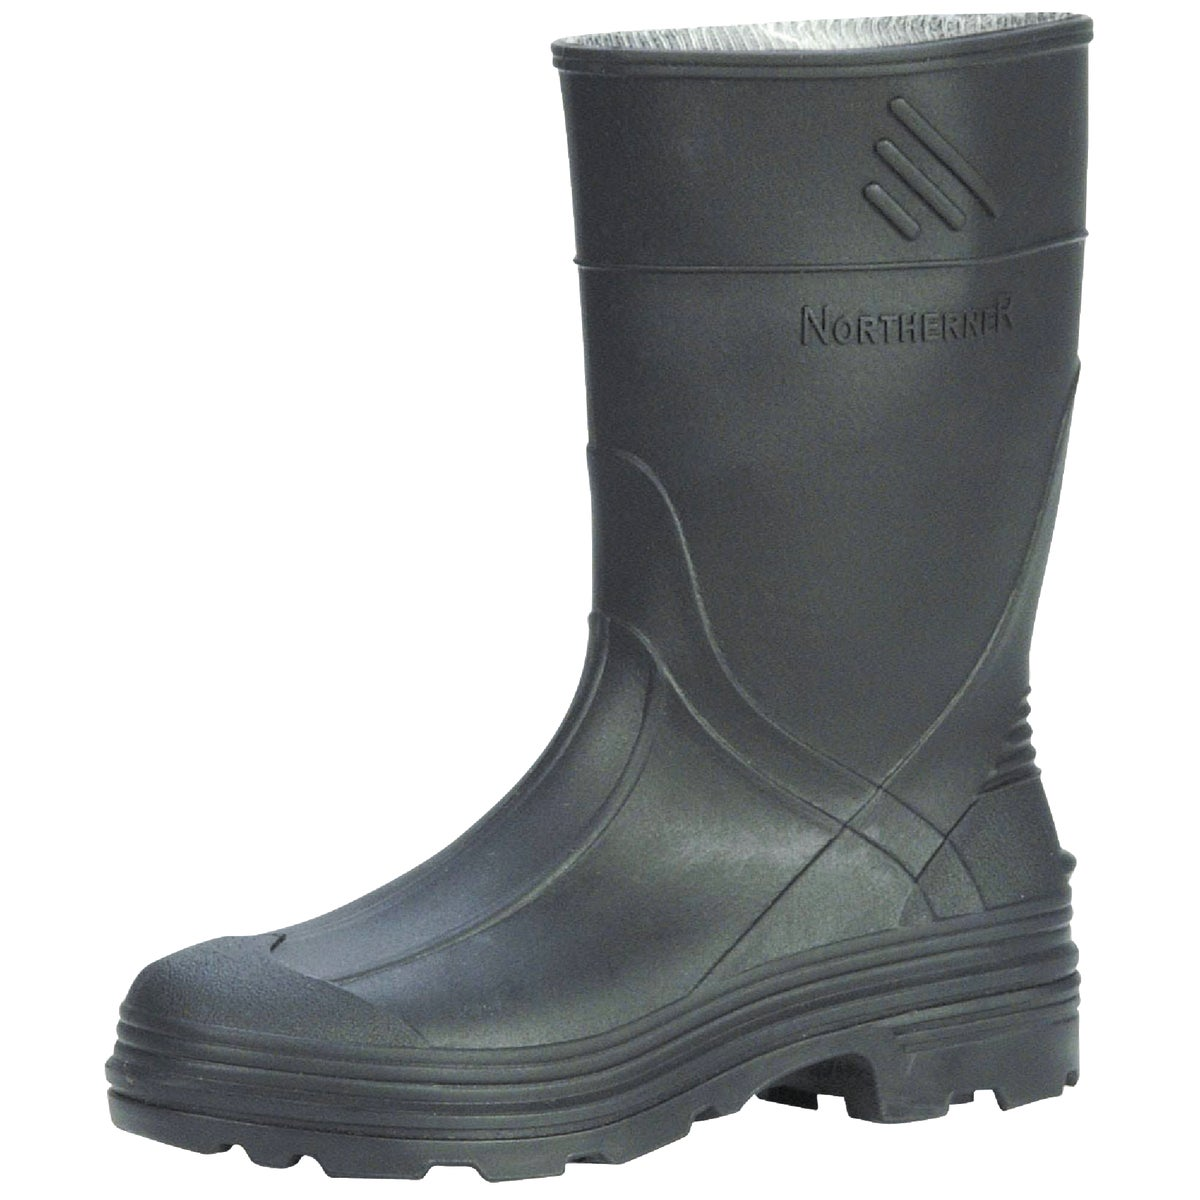 SZ1 YTH BLK PVC RAINBOOT - 76002-1 by Norcross Safety Prod